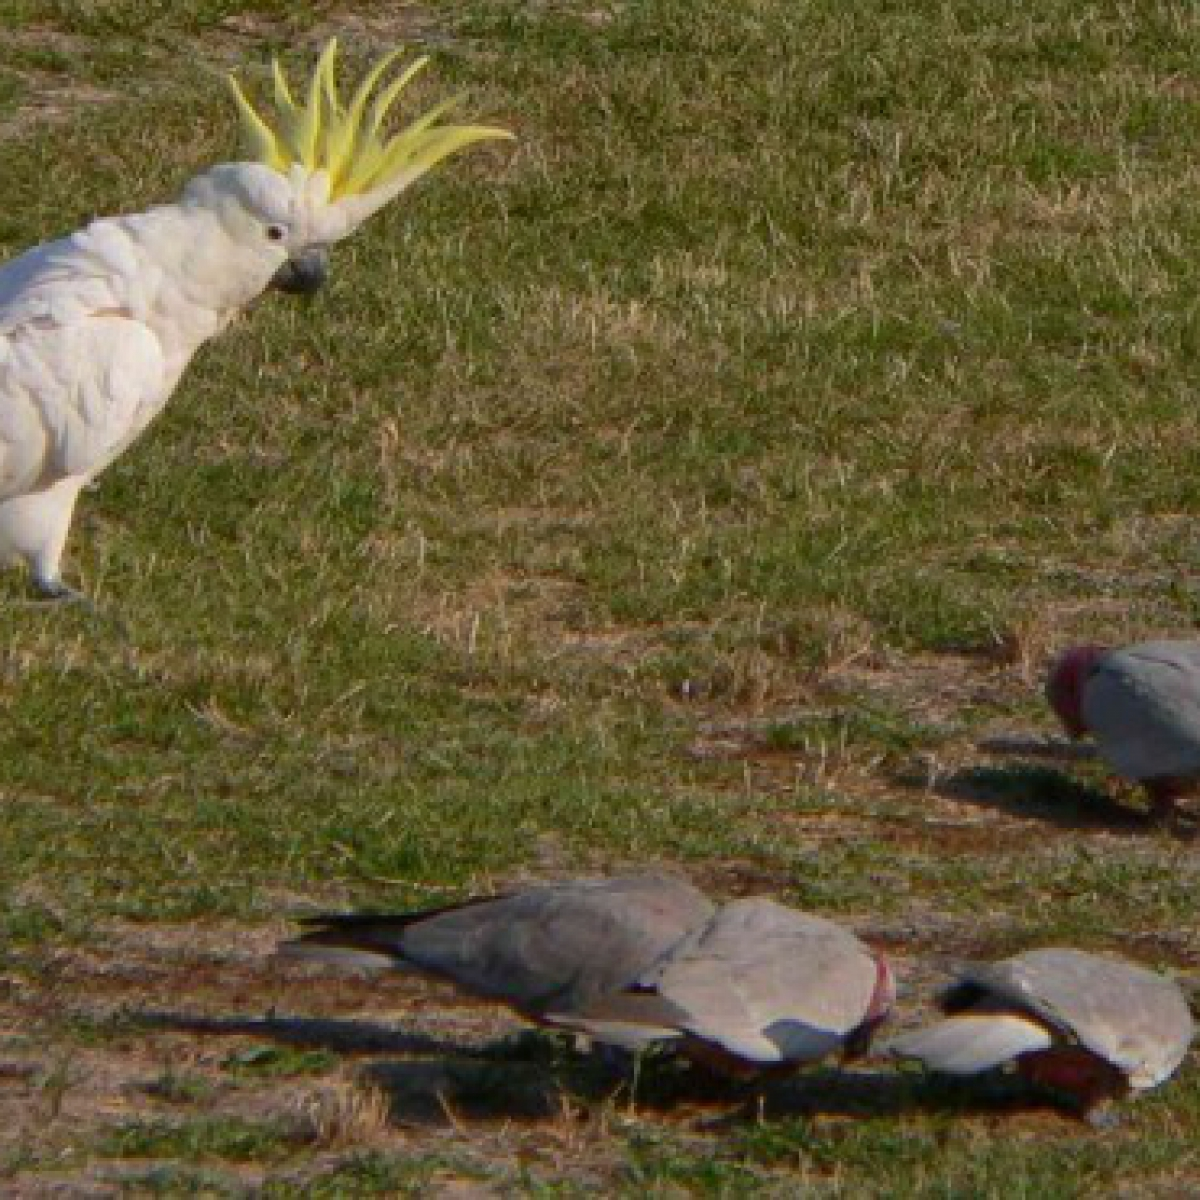 443 Sulphur-crested Cockatoo and Galahs